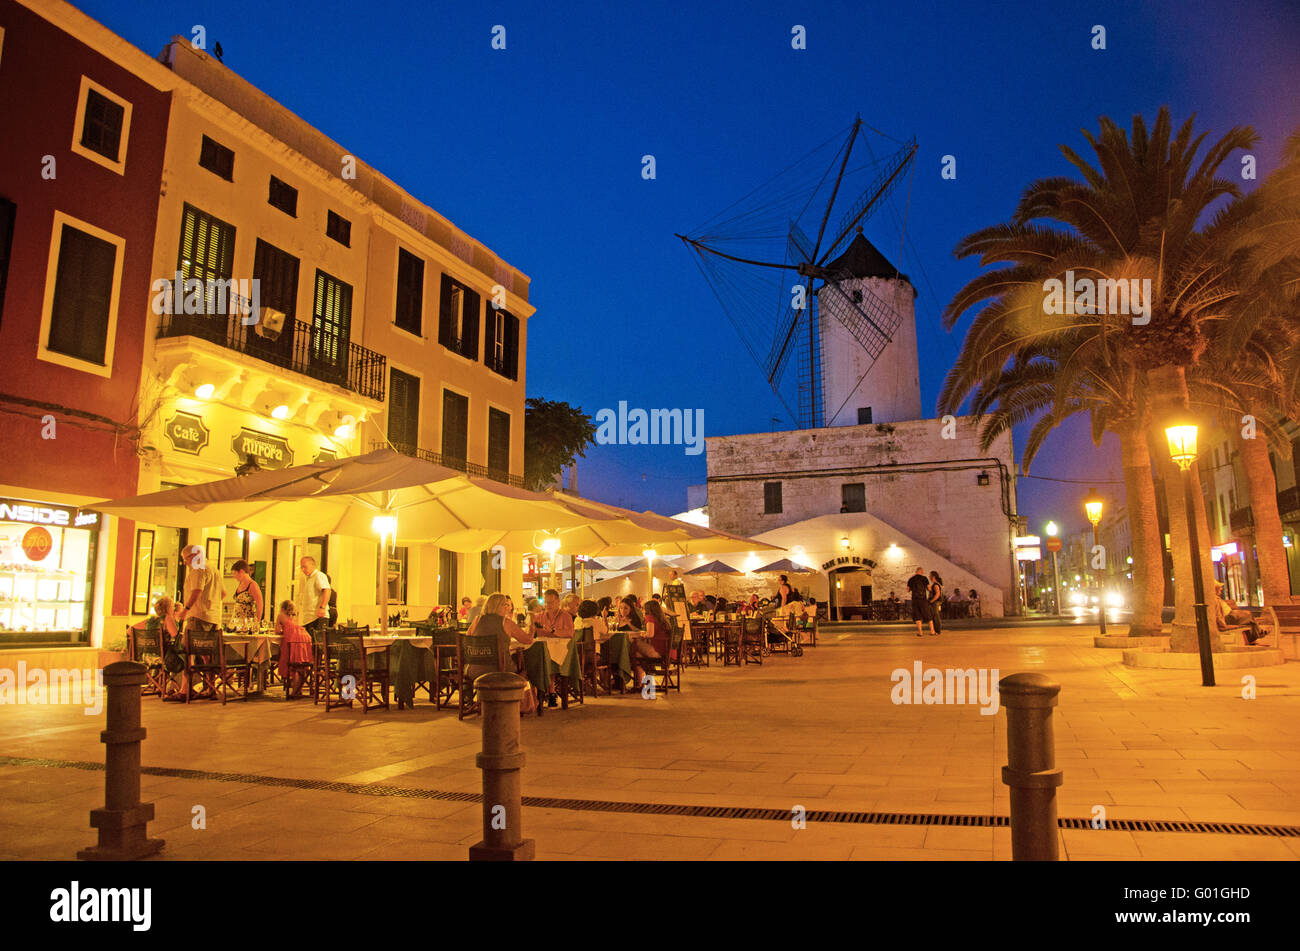 Menorca, Balearic Islands, Spain, Europe: night view of the Moli d'es Comte Asador in Ciutadella, an old windmill - Stock Image